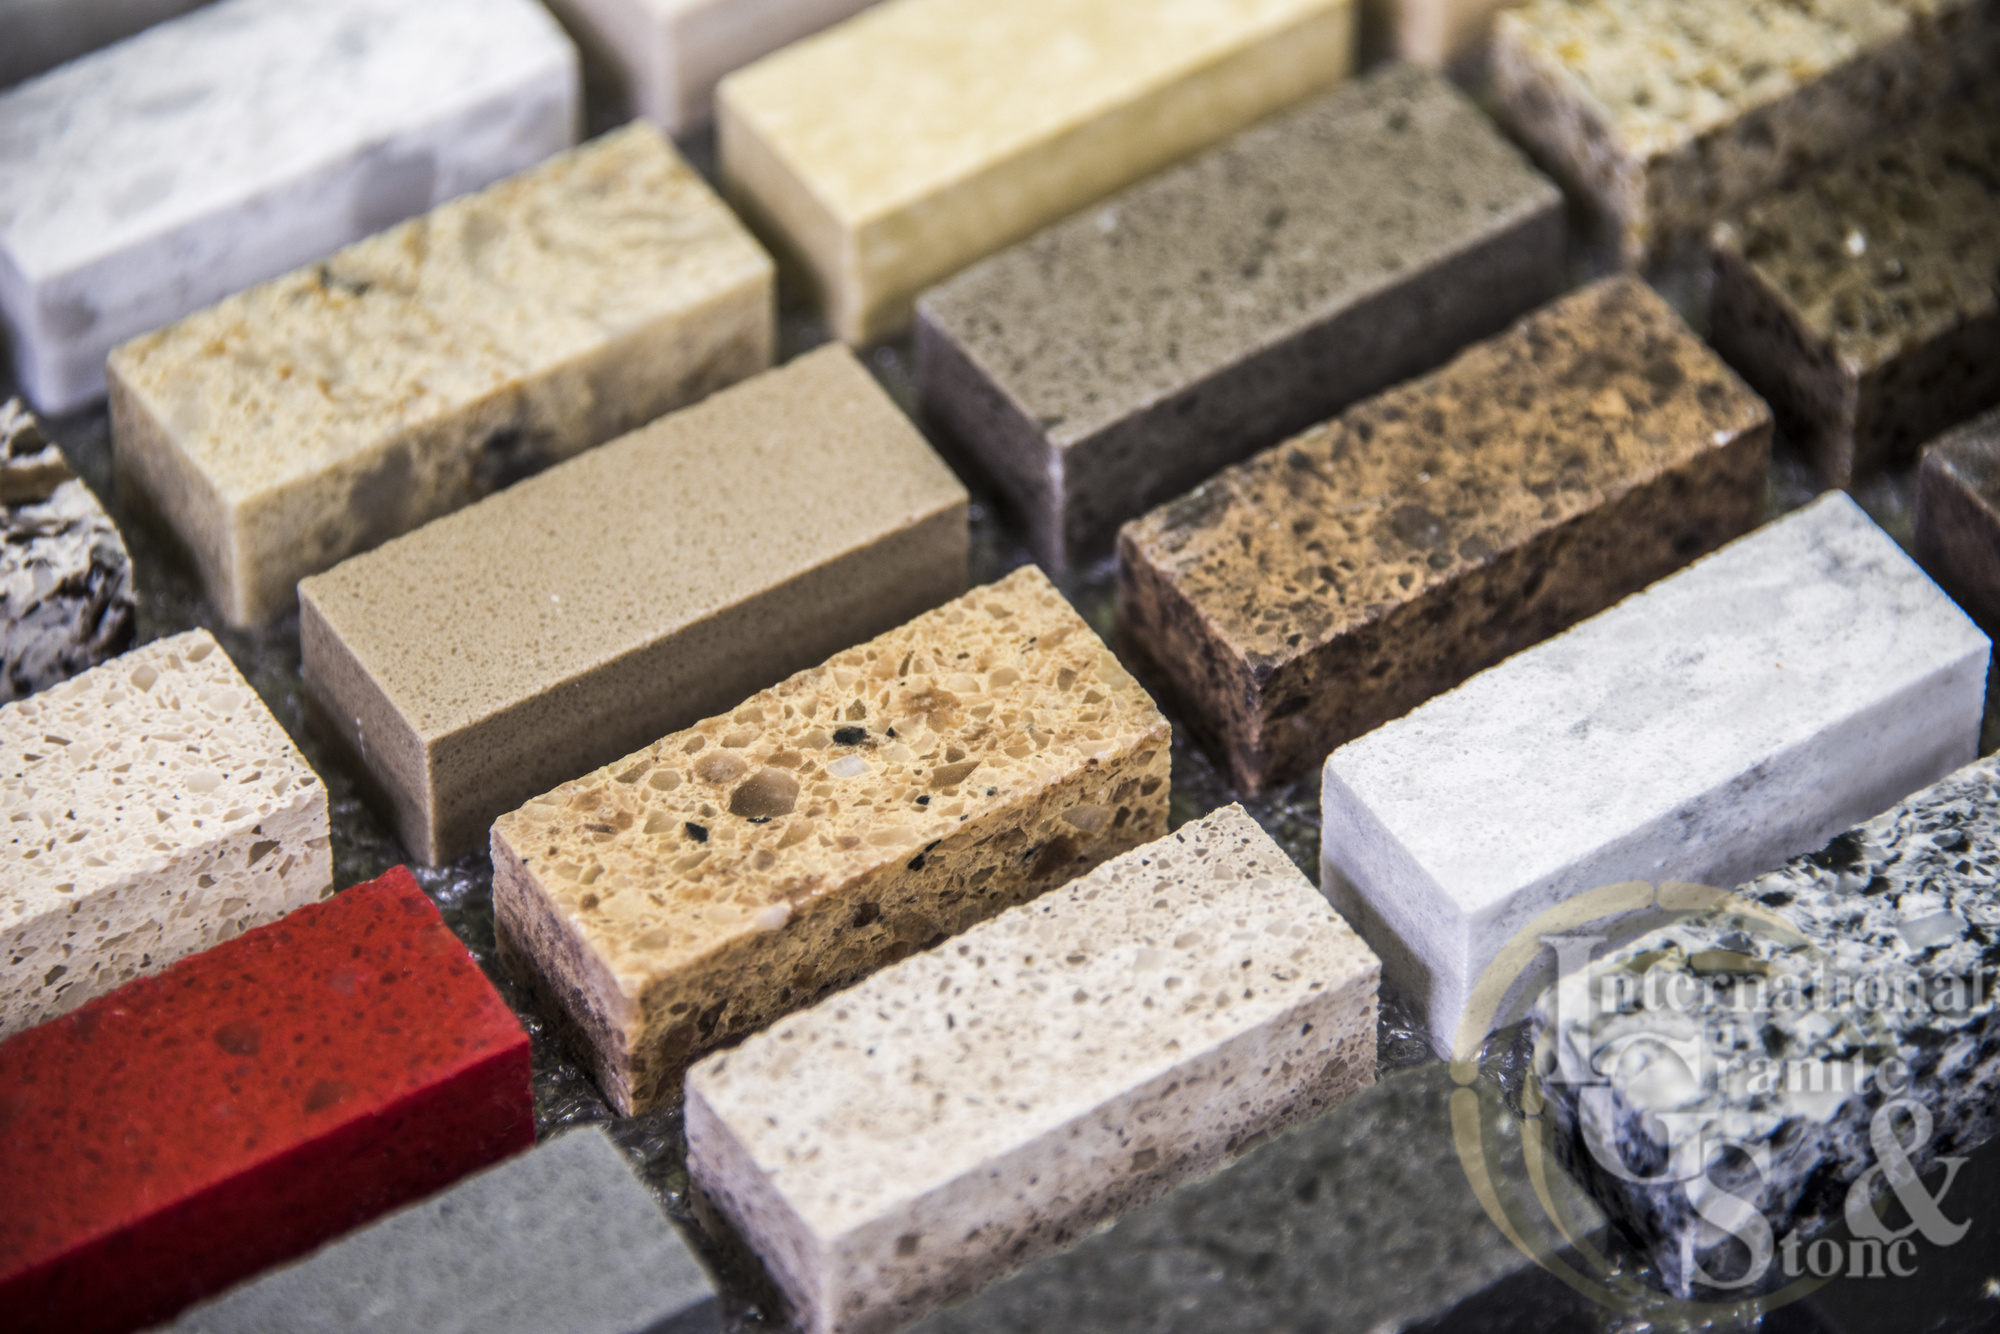 What Do Granite Countertops Cost by Color? Samples